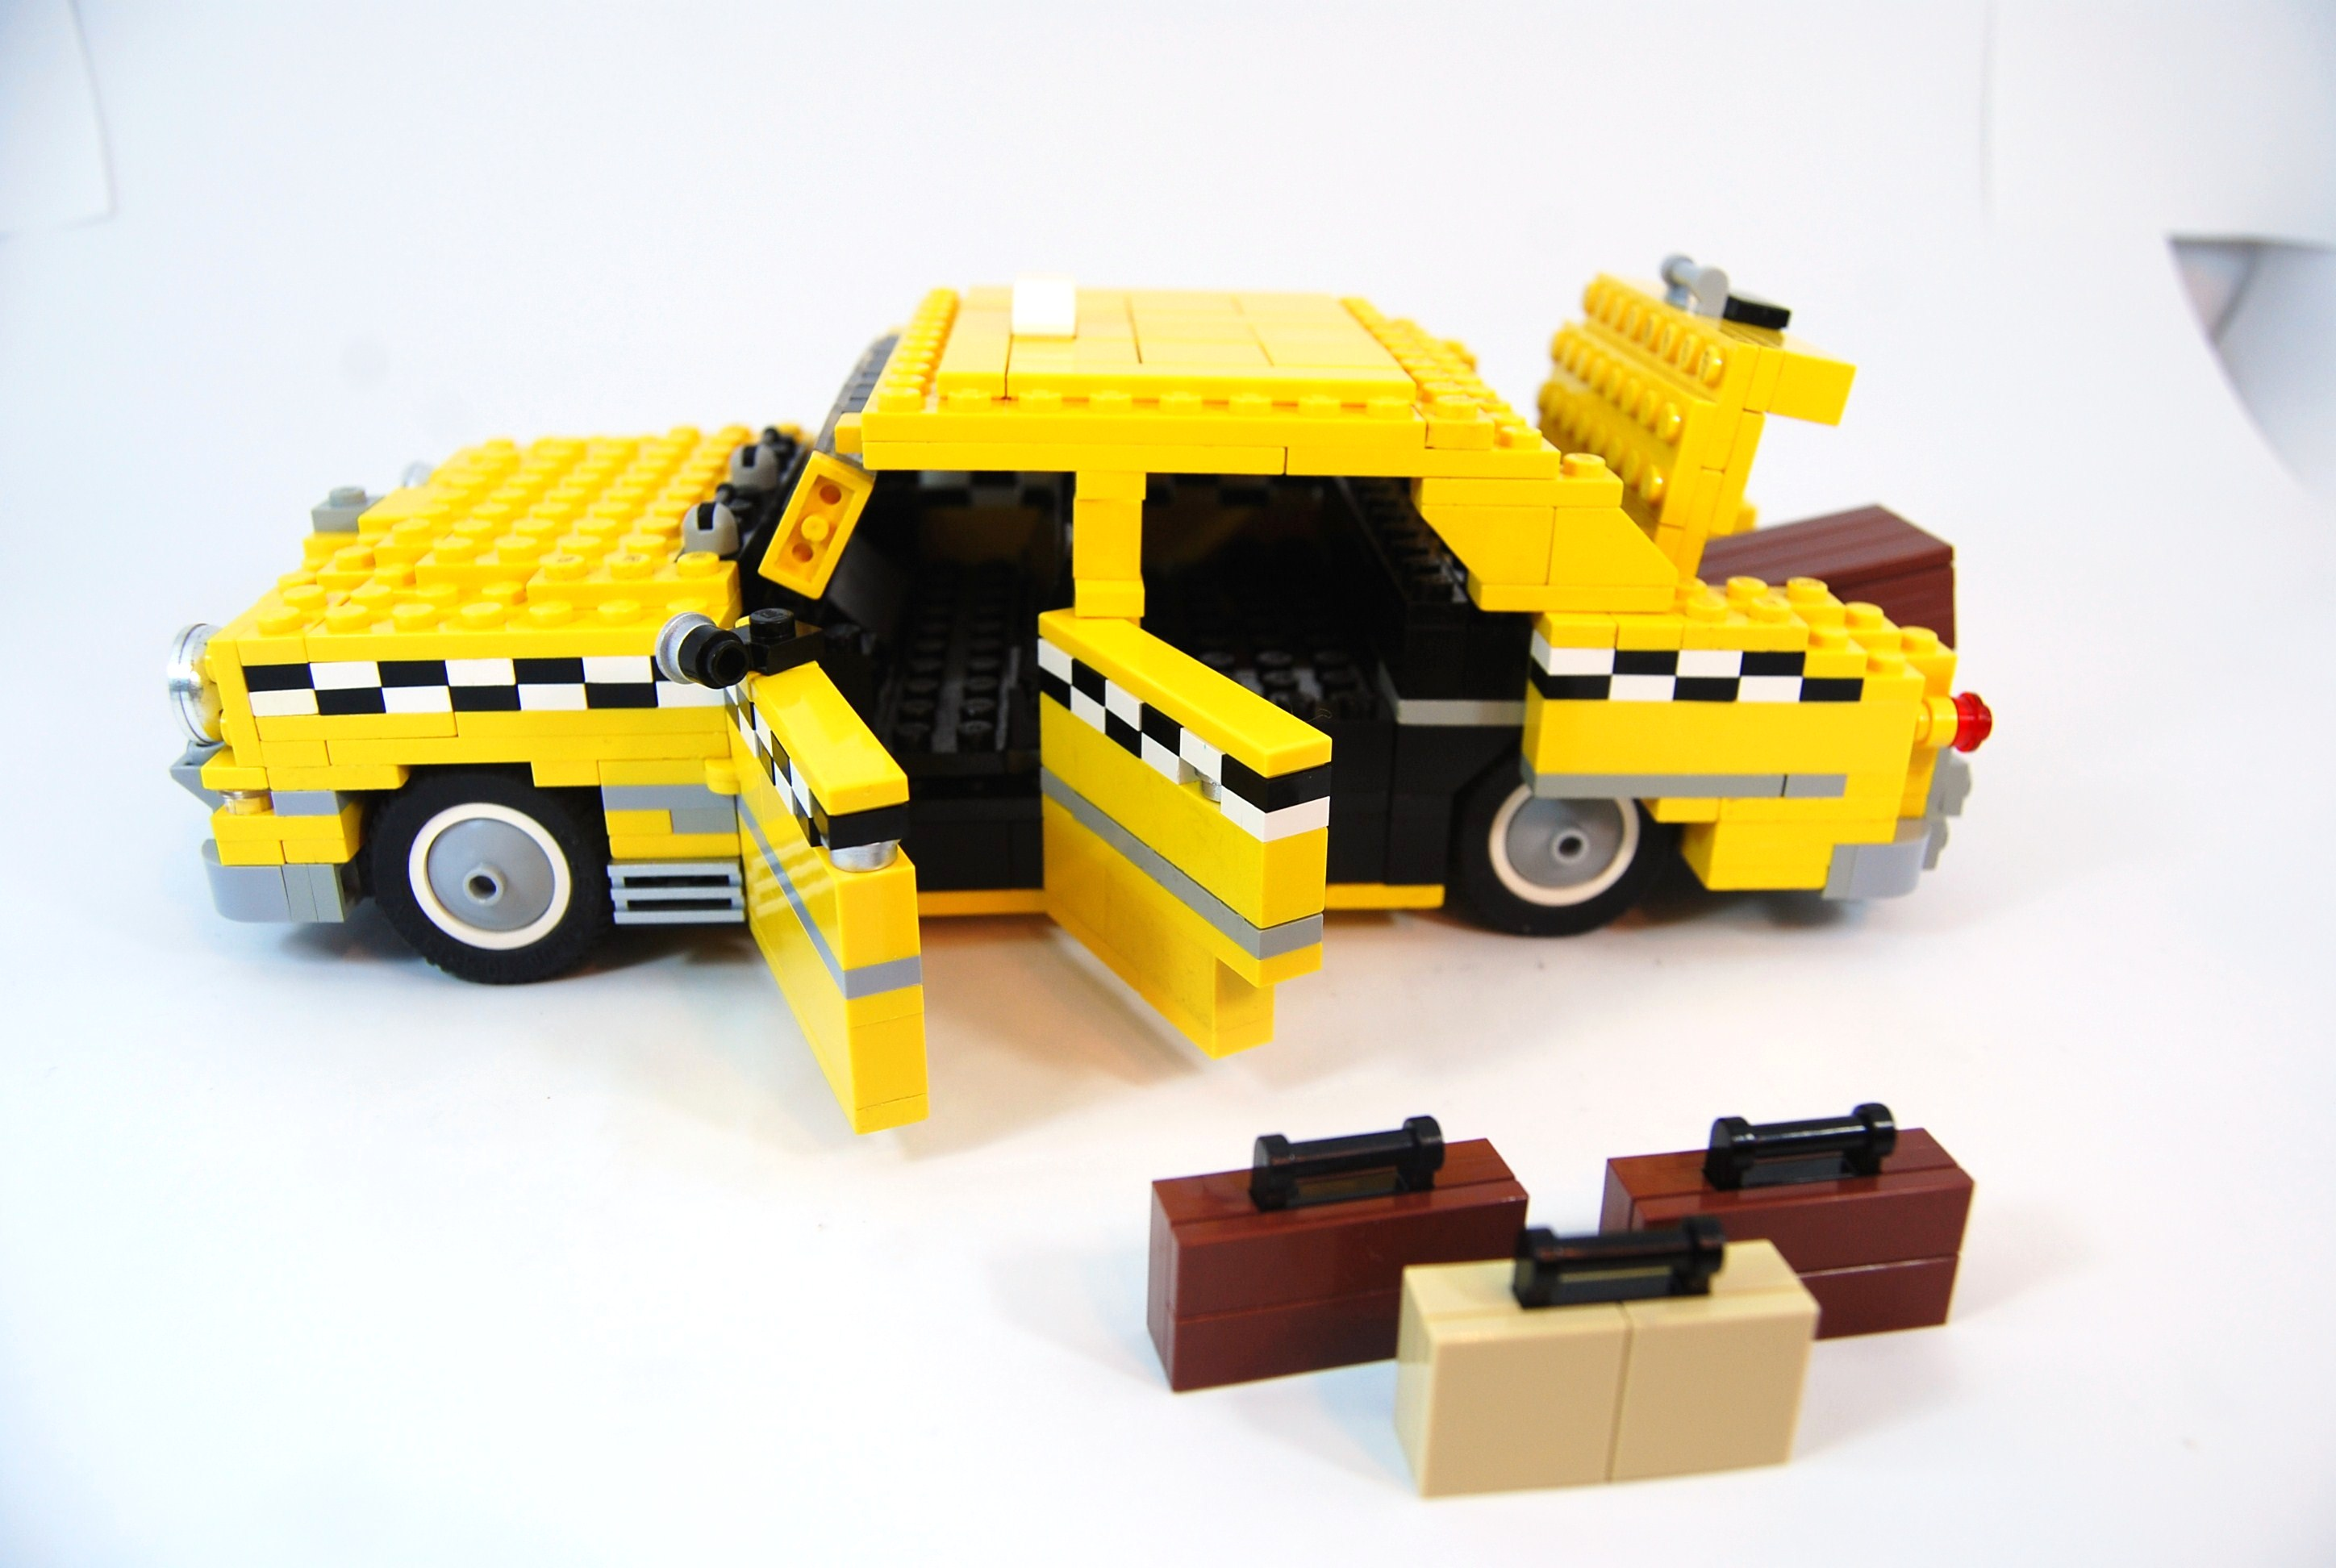 1949_ford_fordor_taxi_with_luggage_07.jpg